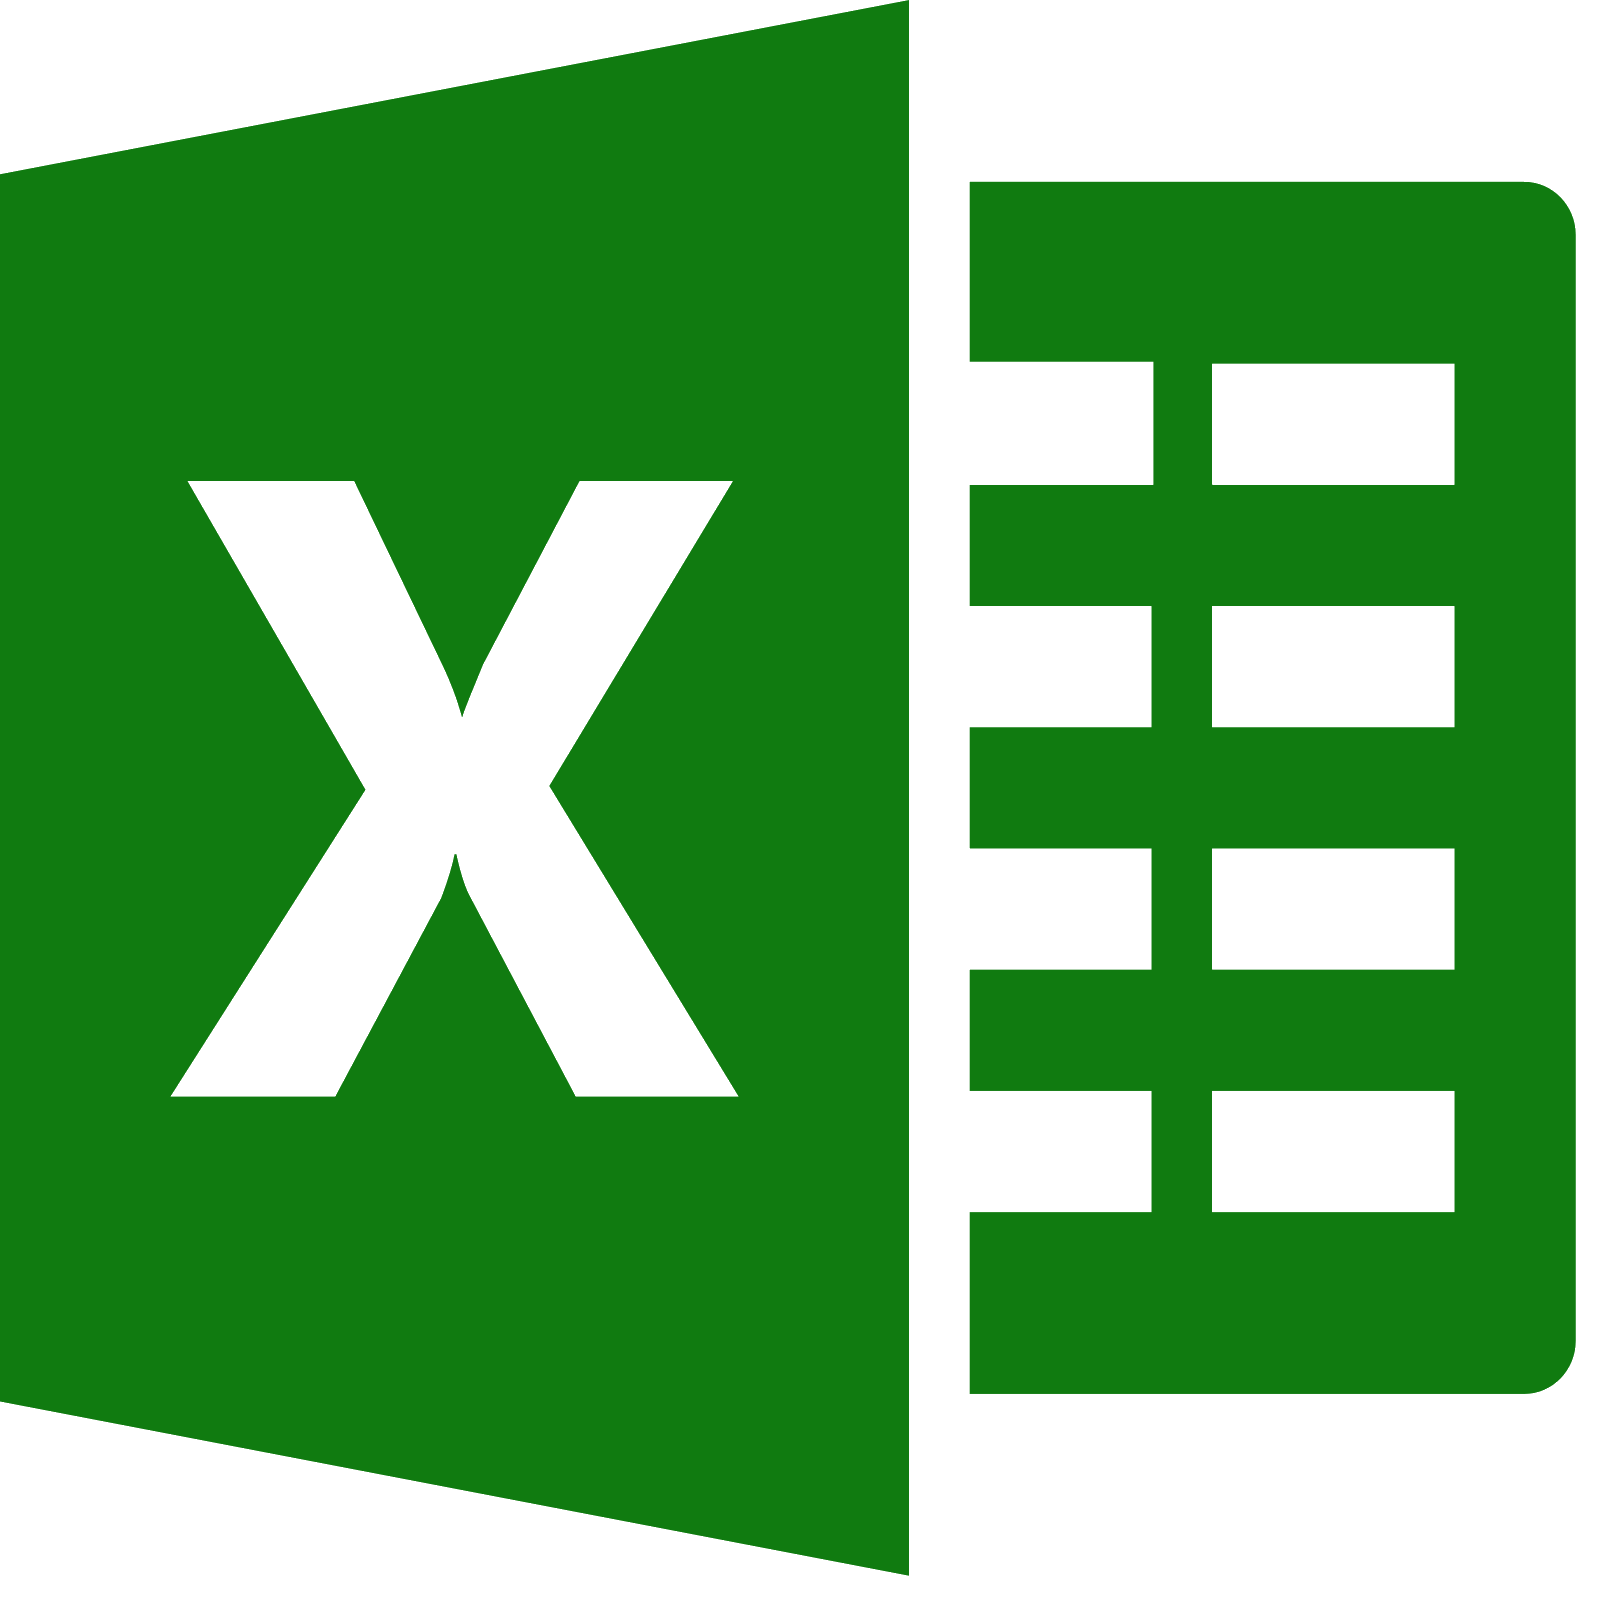 Microsoft Excel Computer Icons Microsoft Office Clip art.